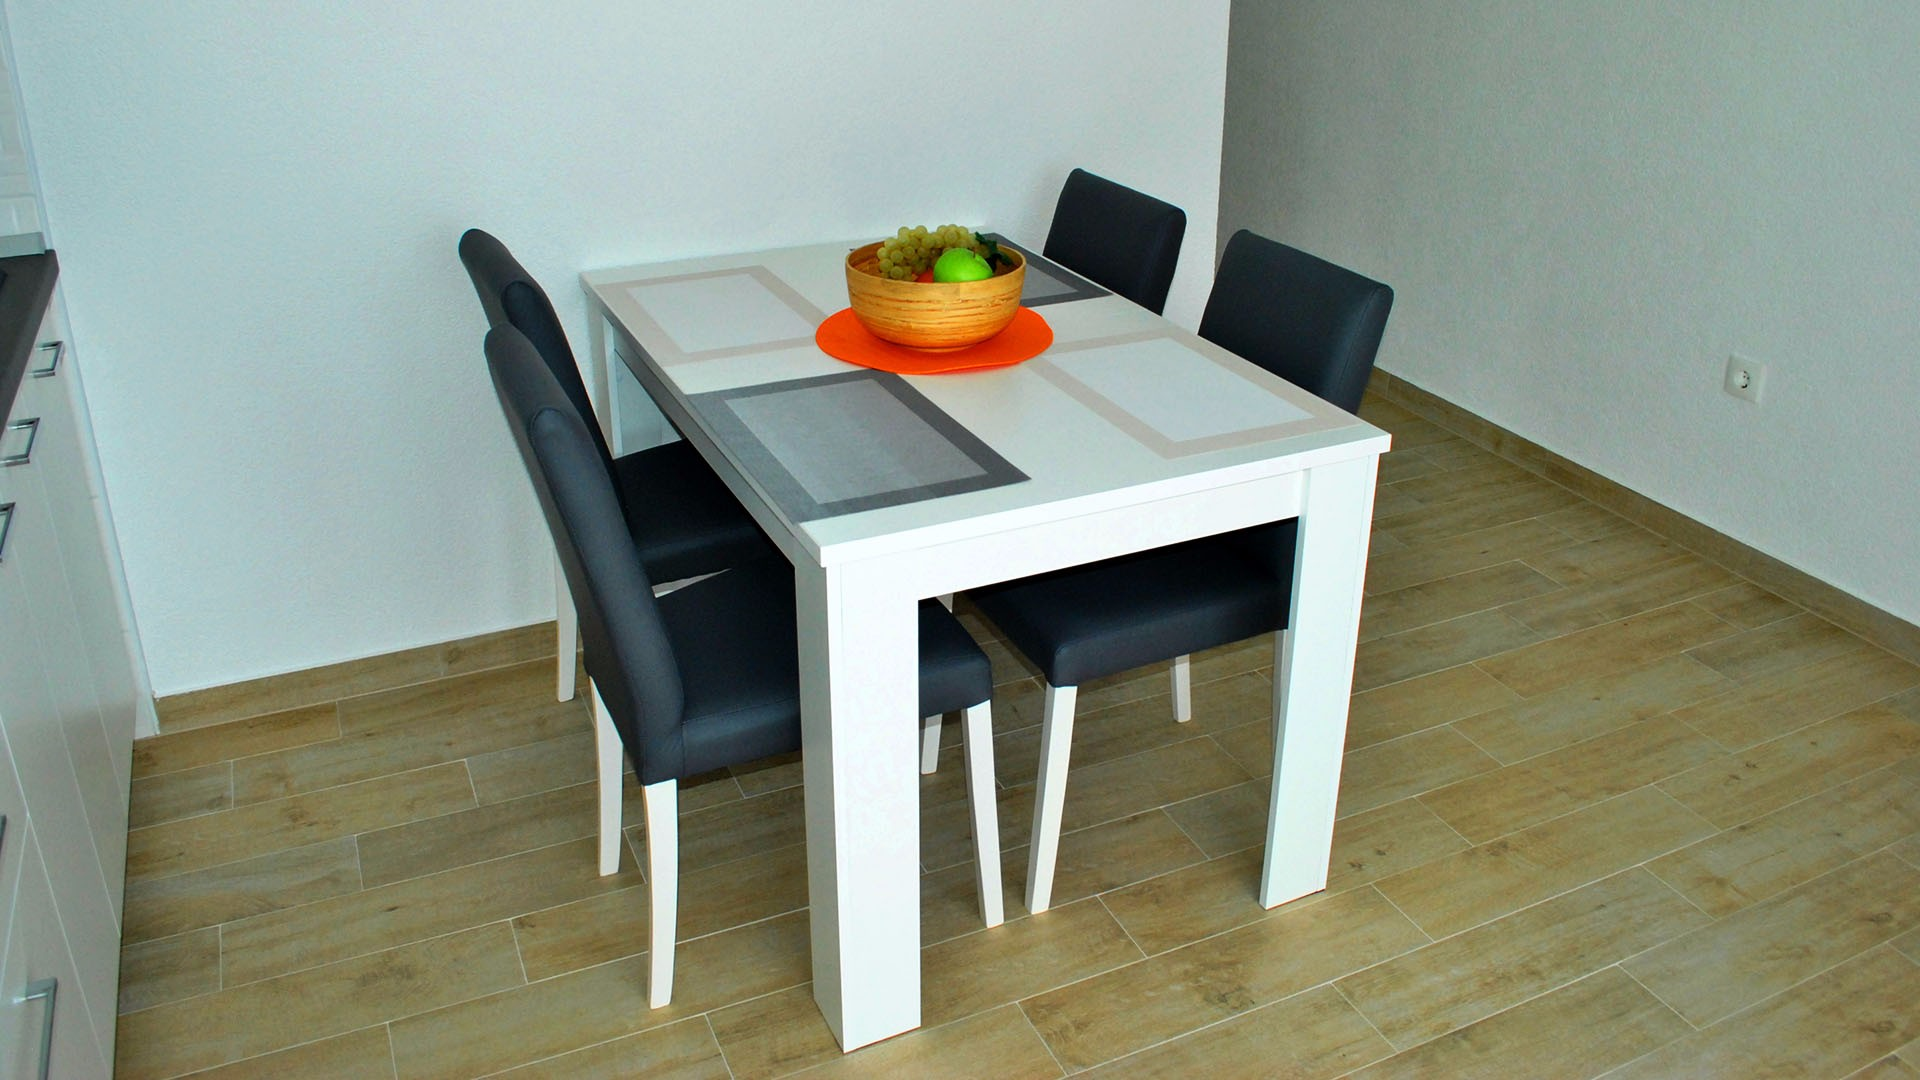 ApartmentA7 dinning table